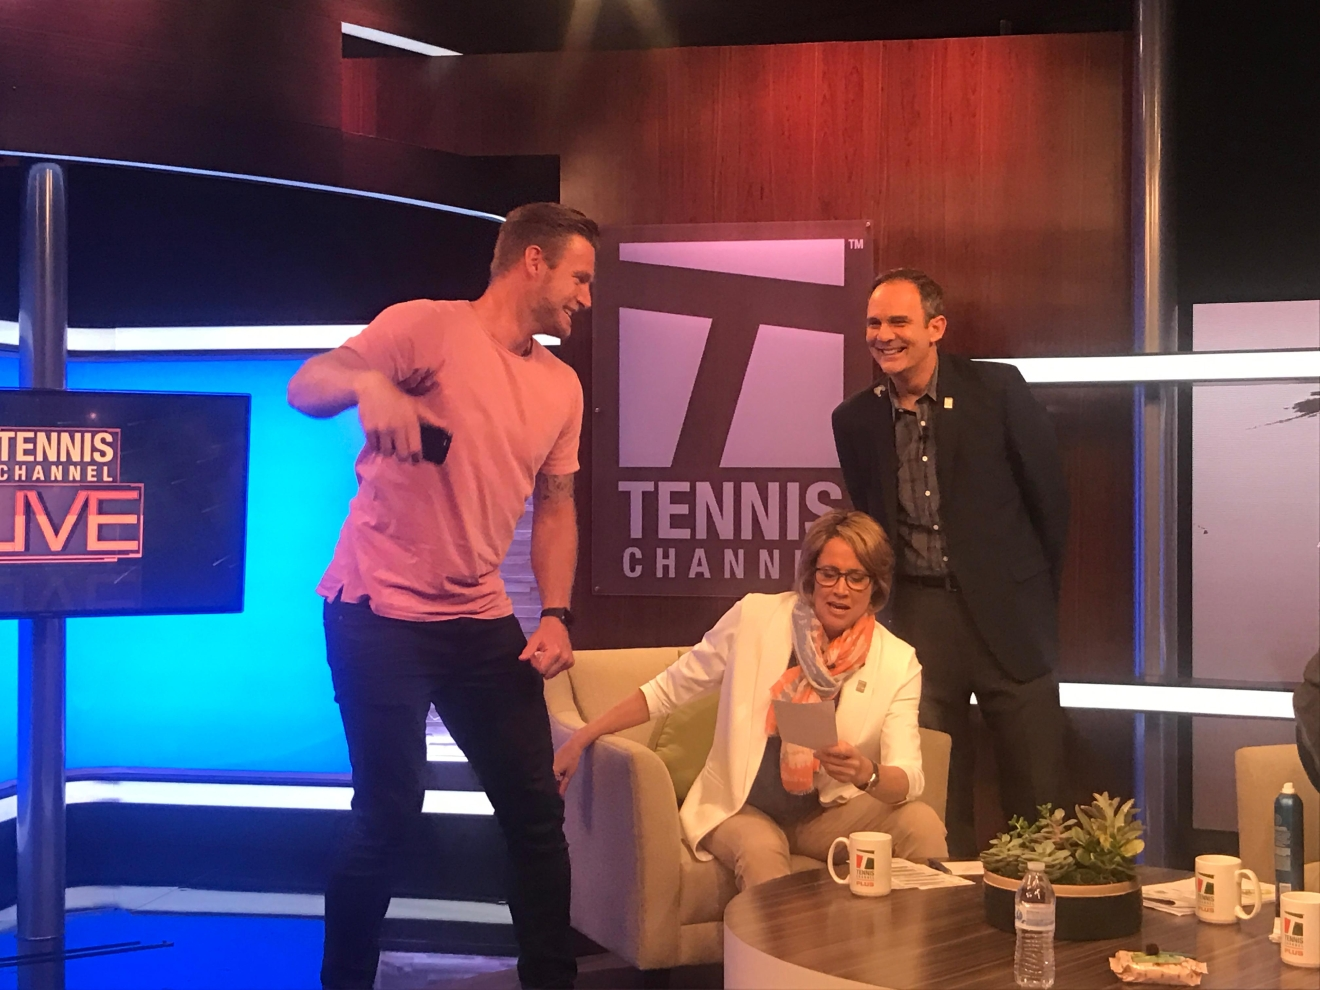 Sam Groth snaps a selfie with Mary Carillo and Paul Annacone